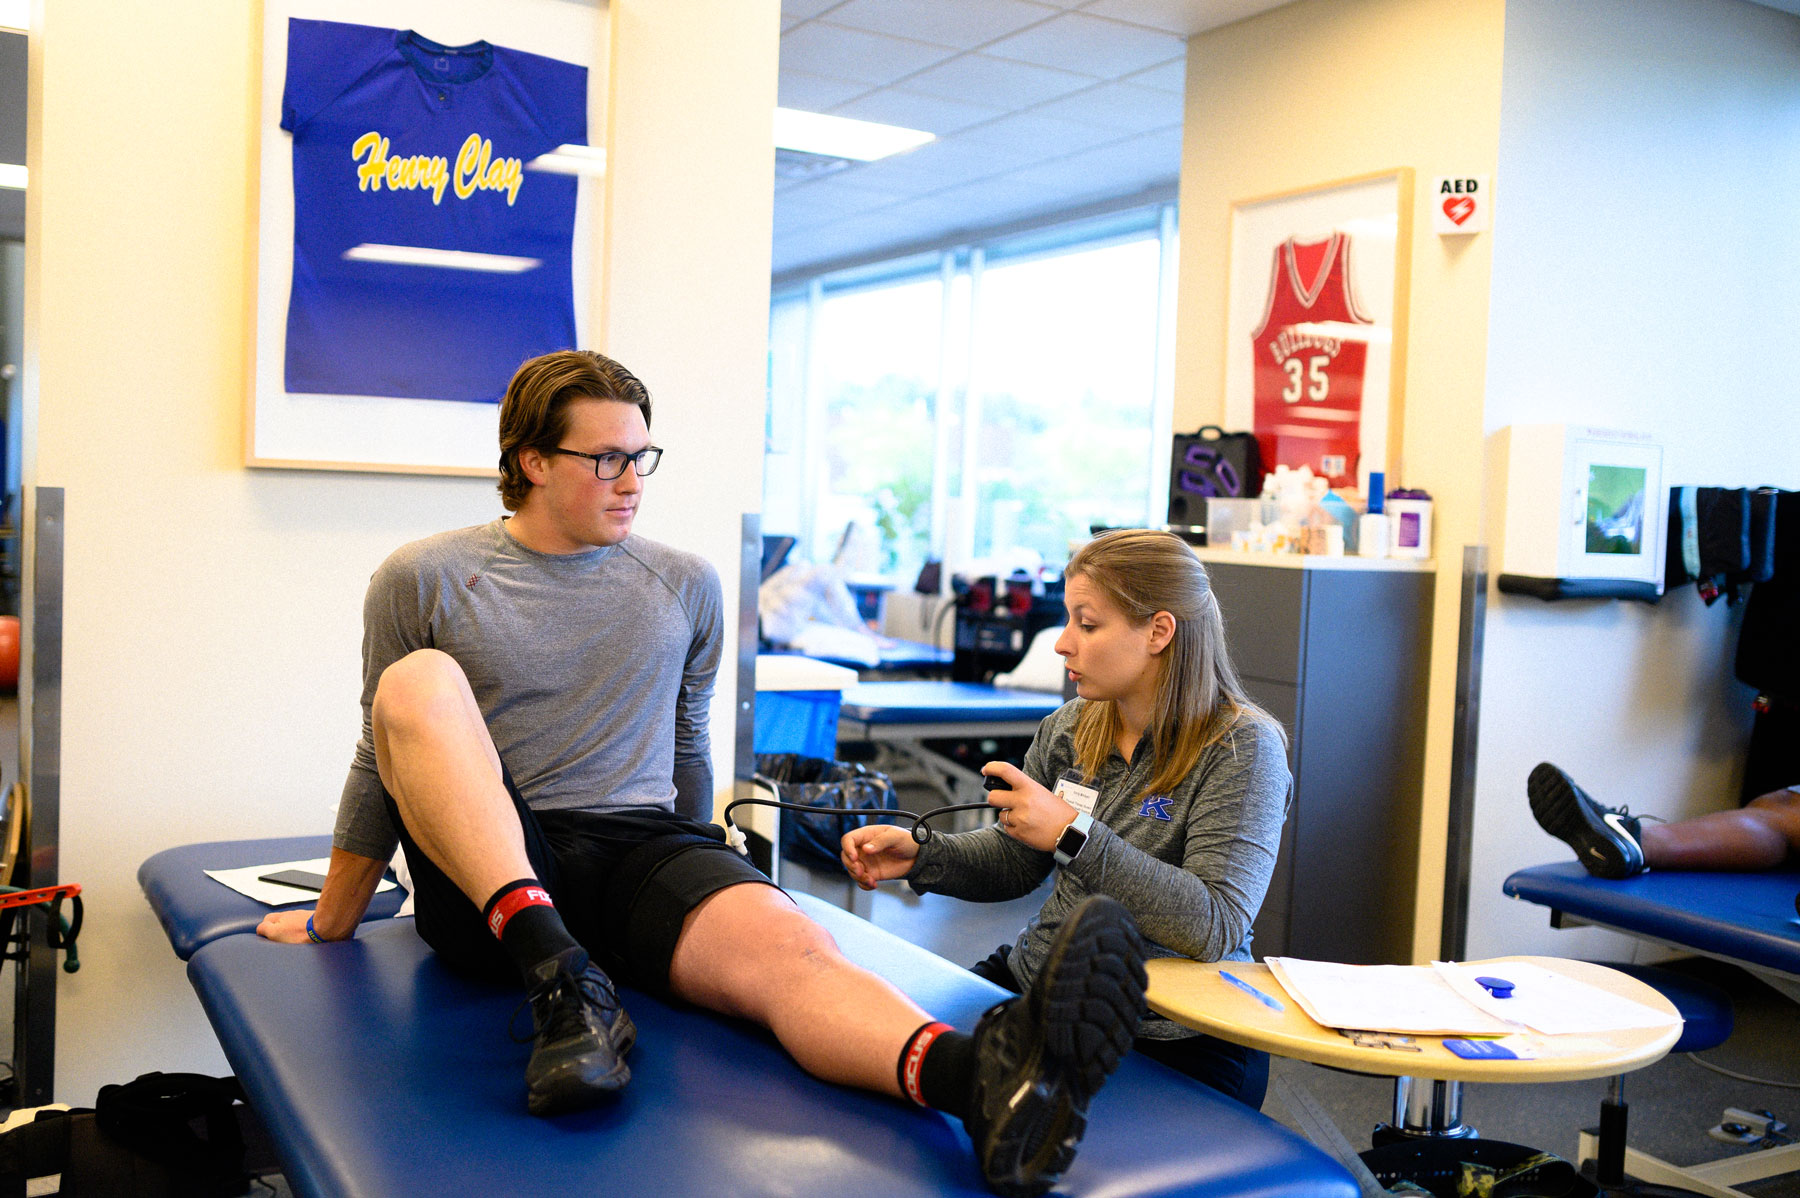 One of Peter's physical therapists sets up his blood flow restriction, a new therapy that allows him to rehab more effectively.